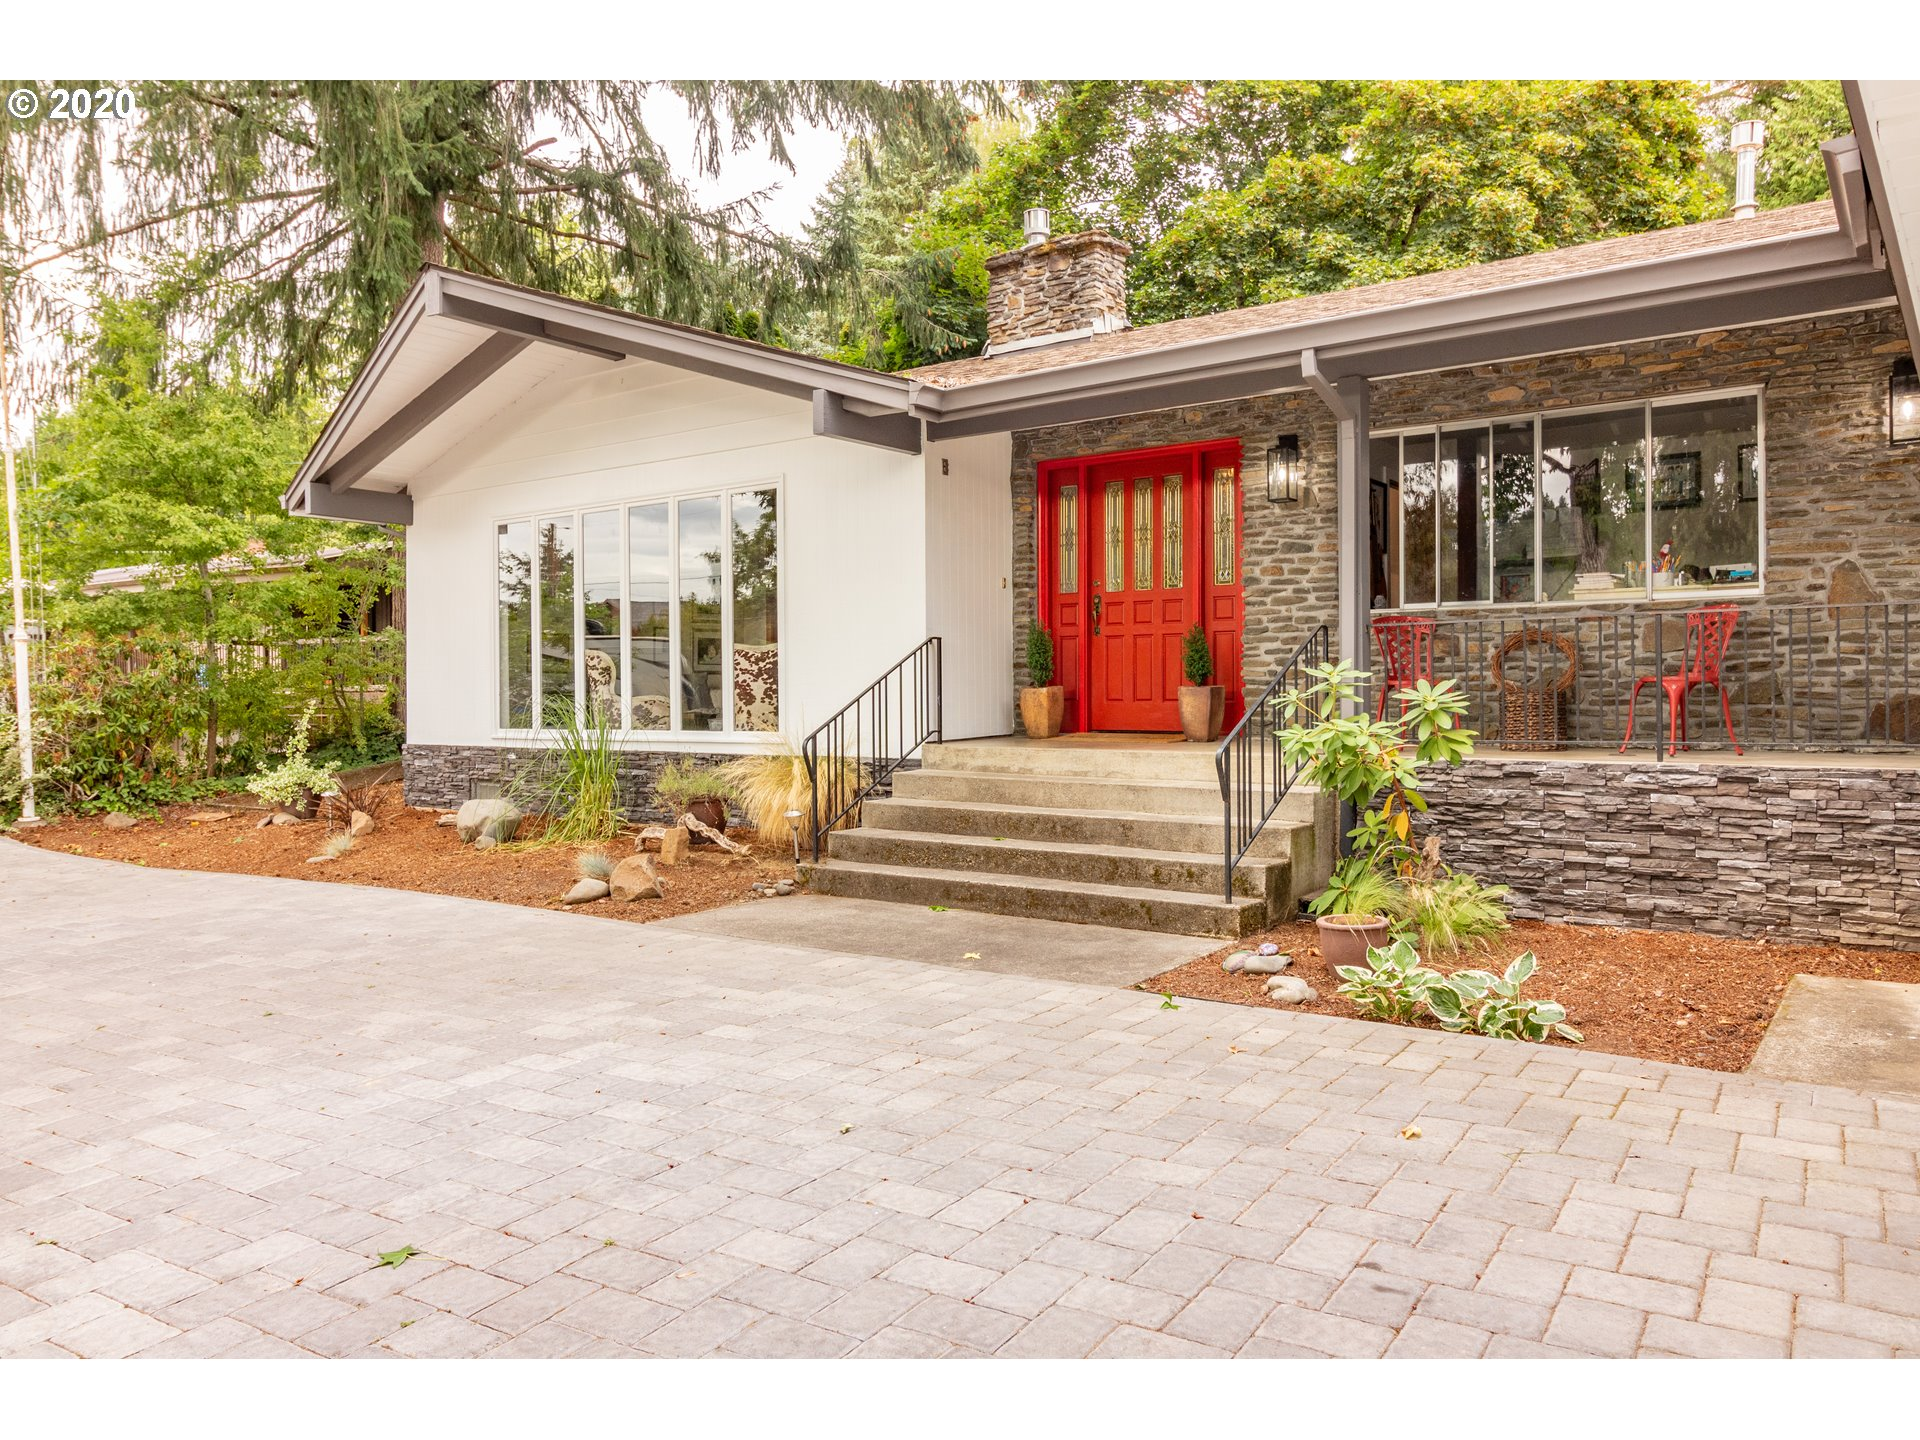 Coveted location on quiet lane just a block to Willamette River w/river access-a peaceful retreat! Sellers remodeled the home for themselves-all high quality & unique really cool features-Open floor plan w/kitchen in center of house. Soaring vaults-Skylights-Open beams-Floor to ceiling windows that look out on huge private yard. Living room also has floor to ceiling windows-Stone fireplace-Vaults-Beams. Master bath is spectacular-huge open glass wall shower & soak tub. Bamboo-Eucalyptus floors